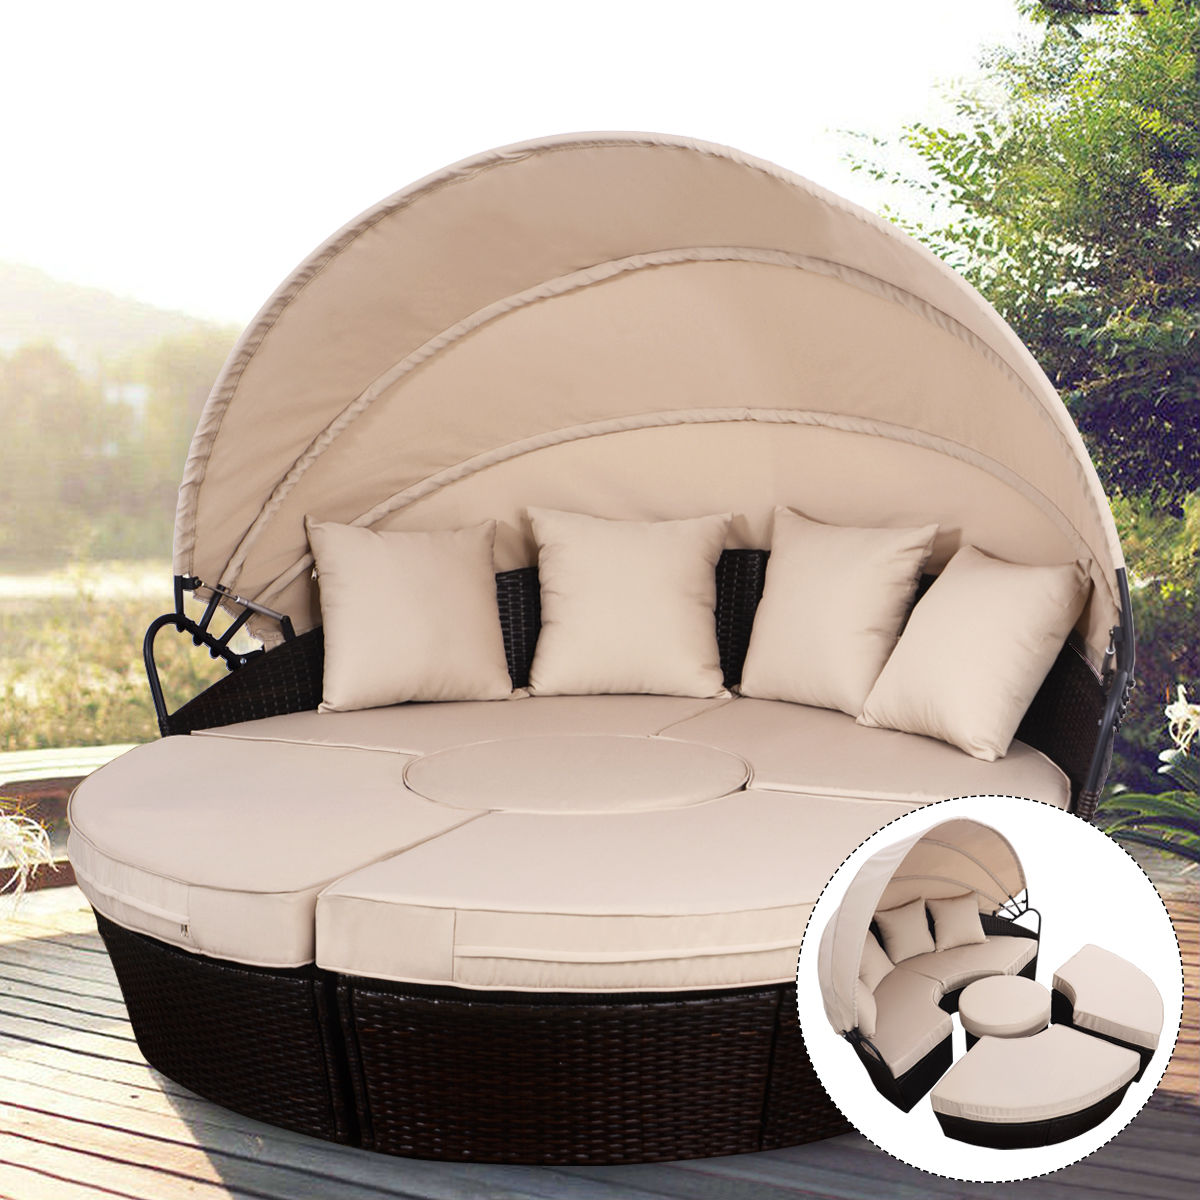 Rattan Sofa Chair Set Outdoor Daybed Patio Sofa Furniture Brown